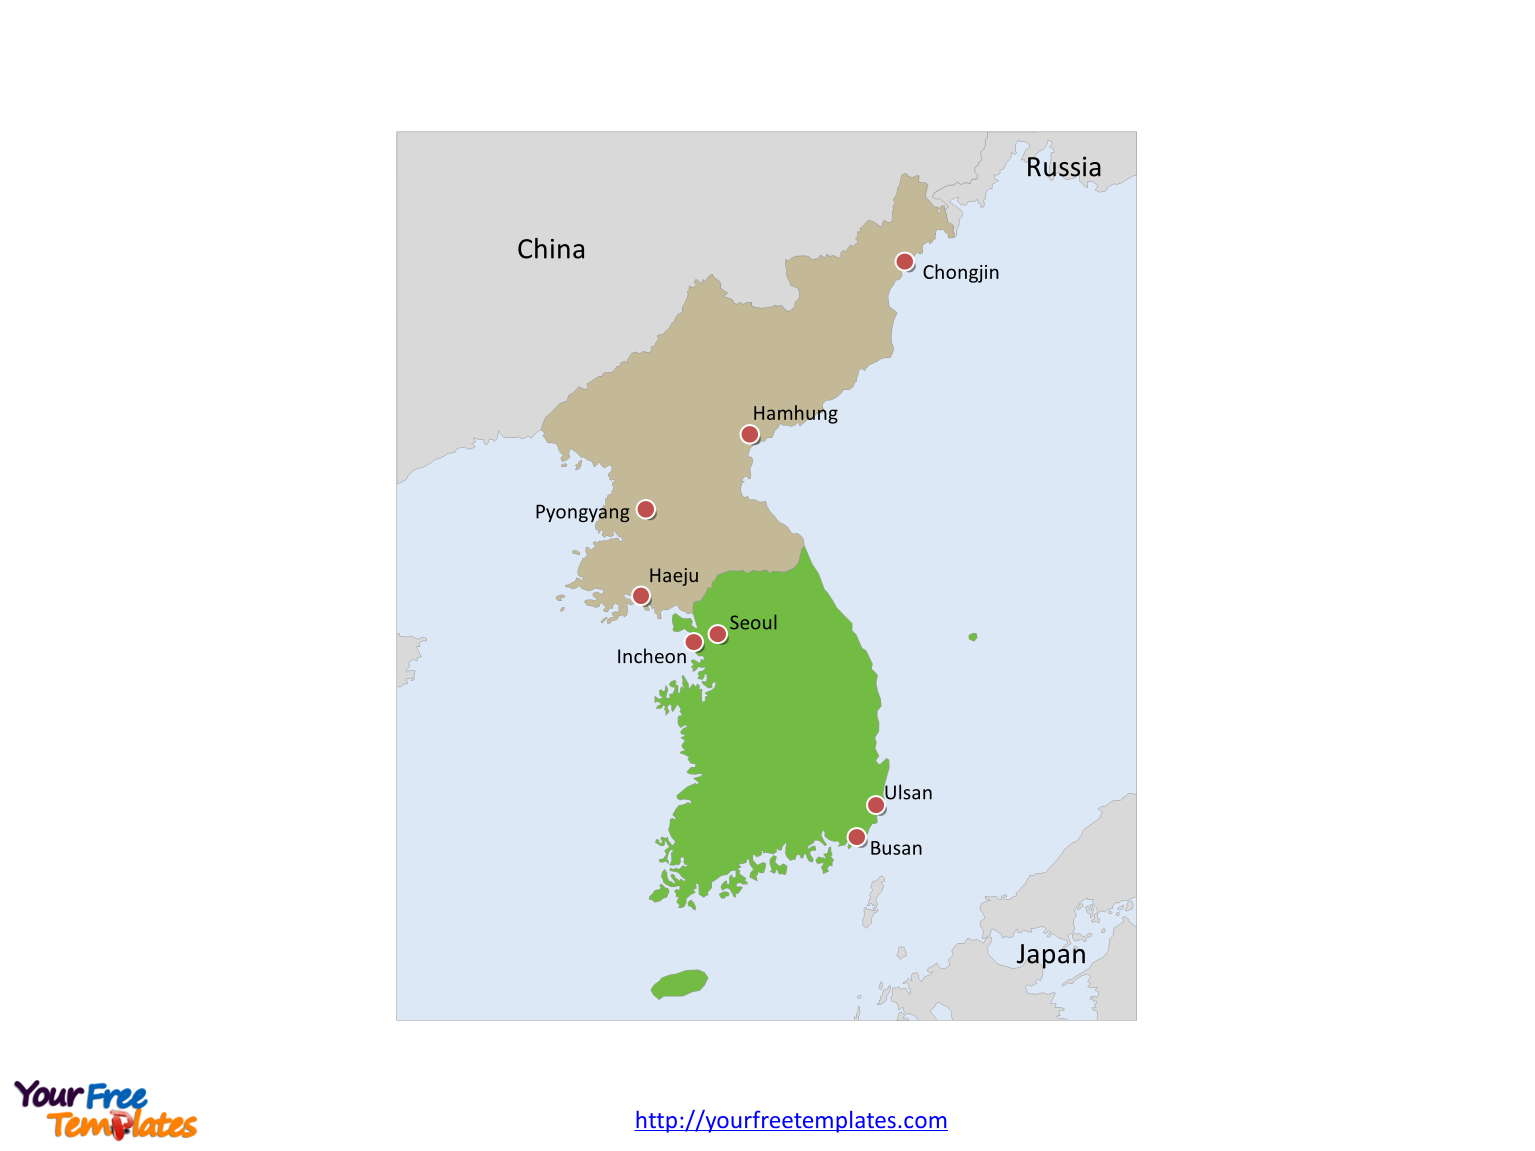 Framed Korea Peninsula Political map labeled with major cities and surrounding countries, China, Russia and Japan.